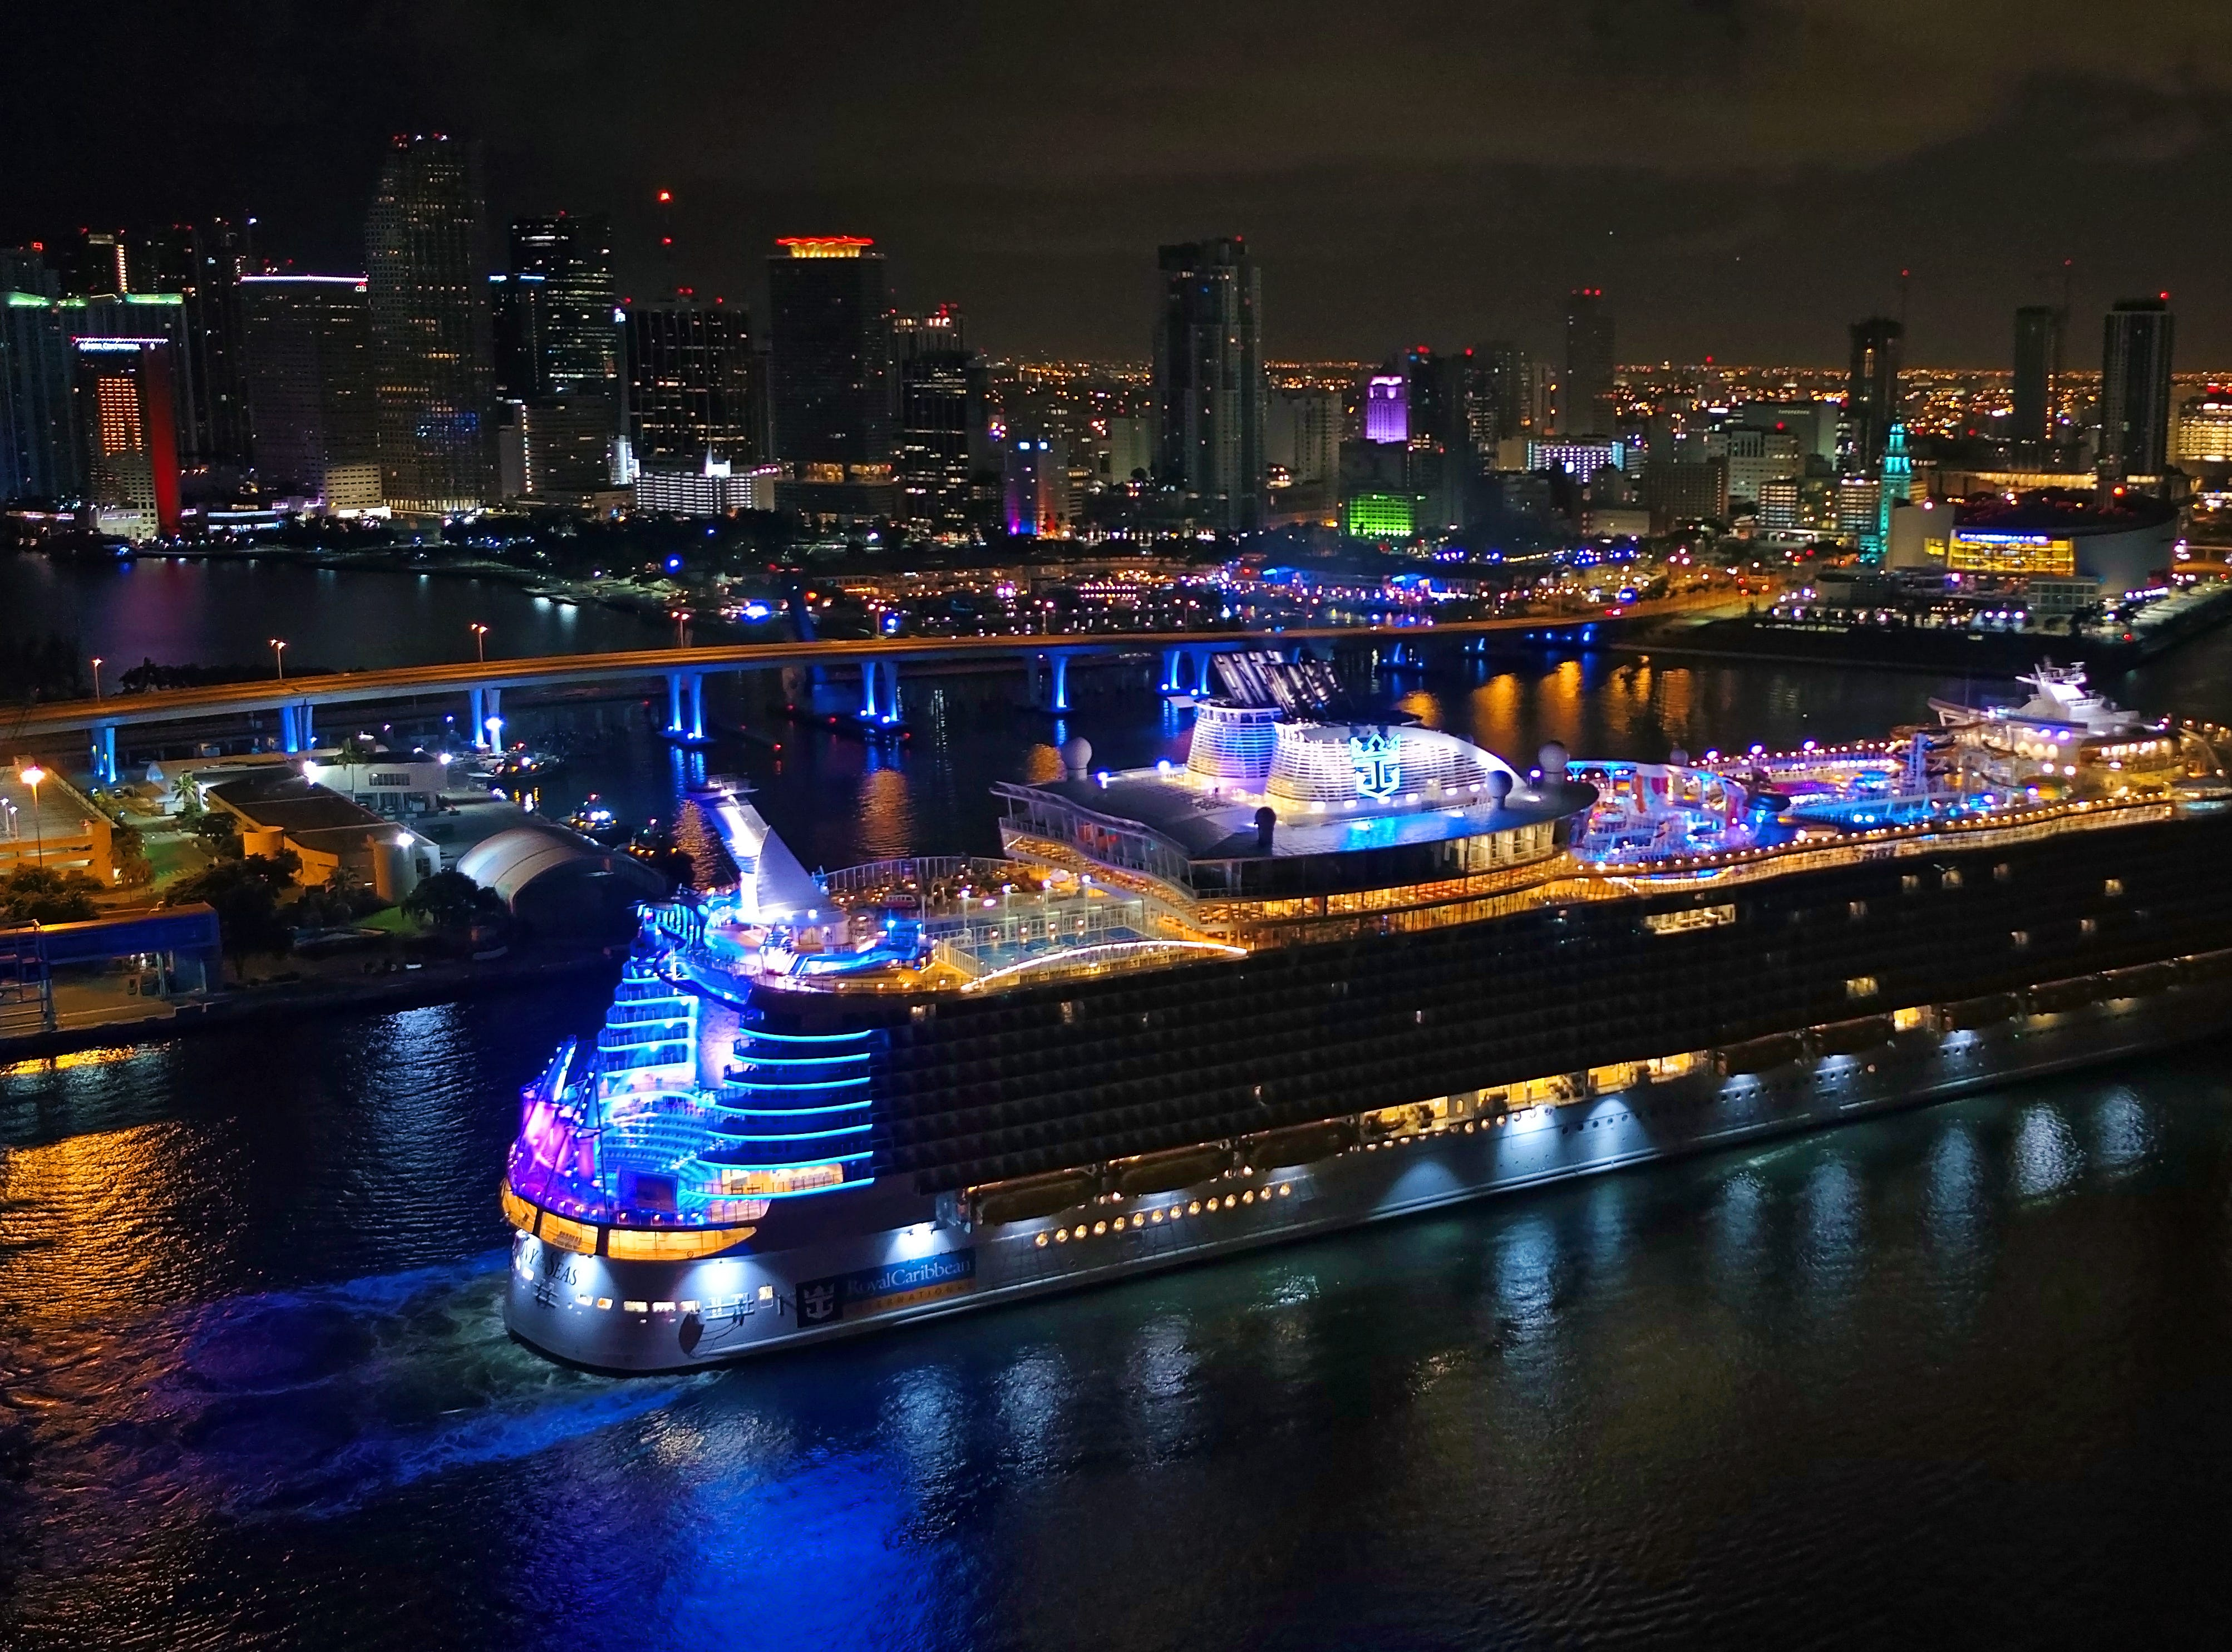 Unveiled earlier this year in Europe, Symphony of the Seas pulled into the Port of Miami on Friday before dawn after a 12-night voyage from Barcelona.